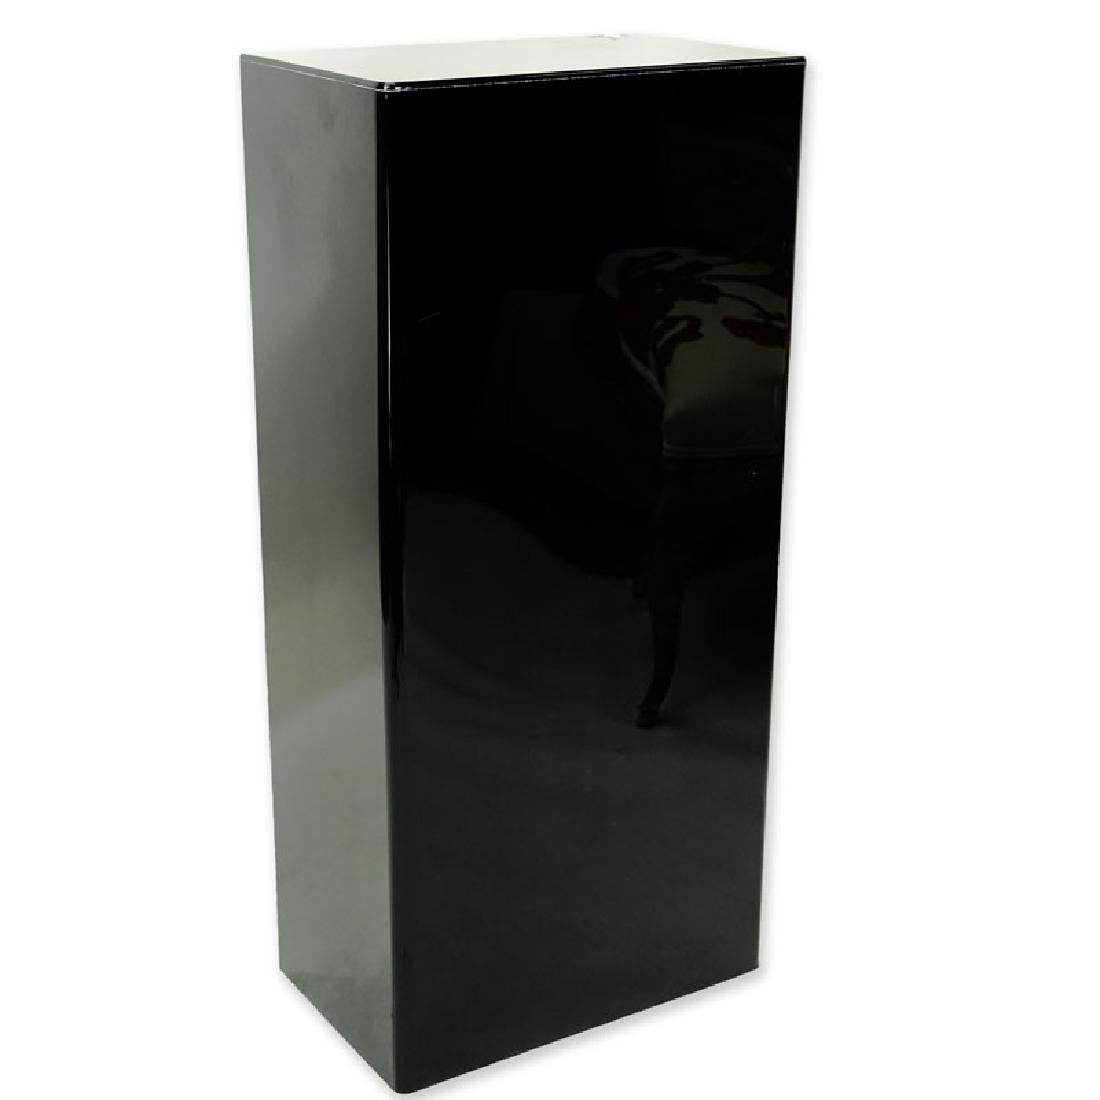 Modern Black Acrylic Pedestal Stand. Typical scuffs to